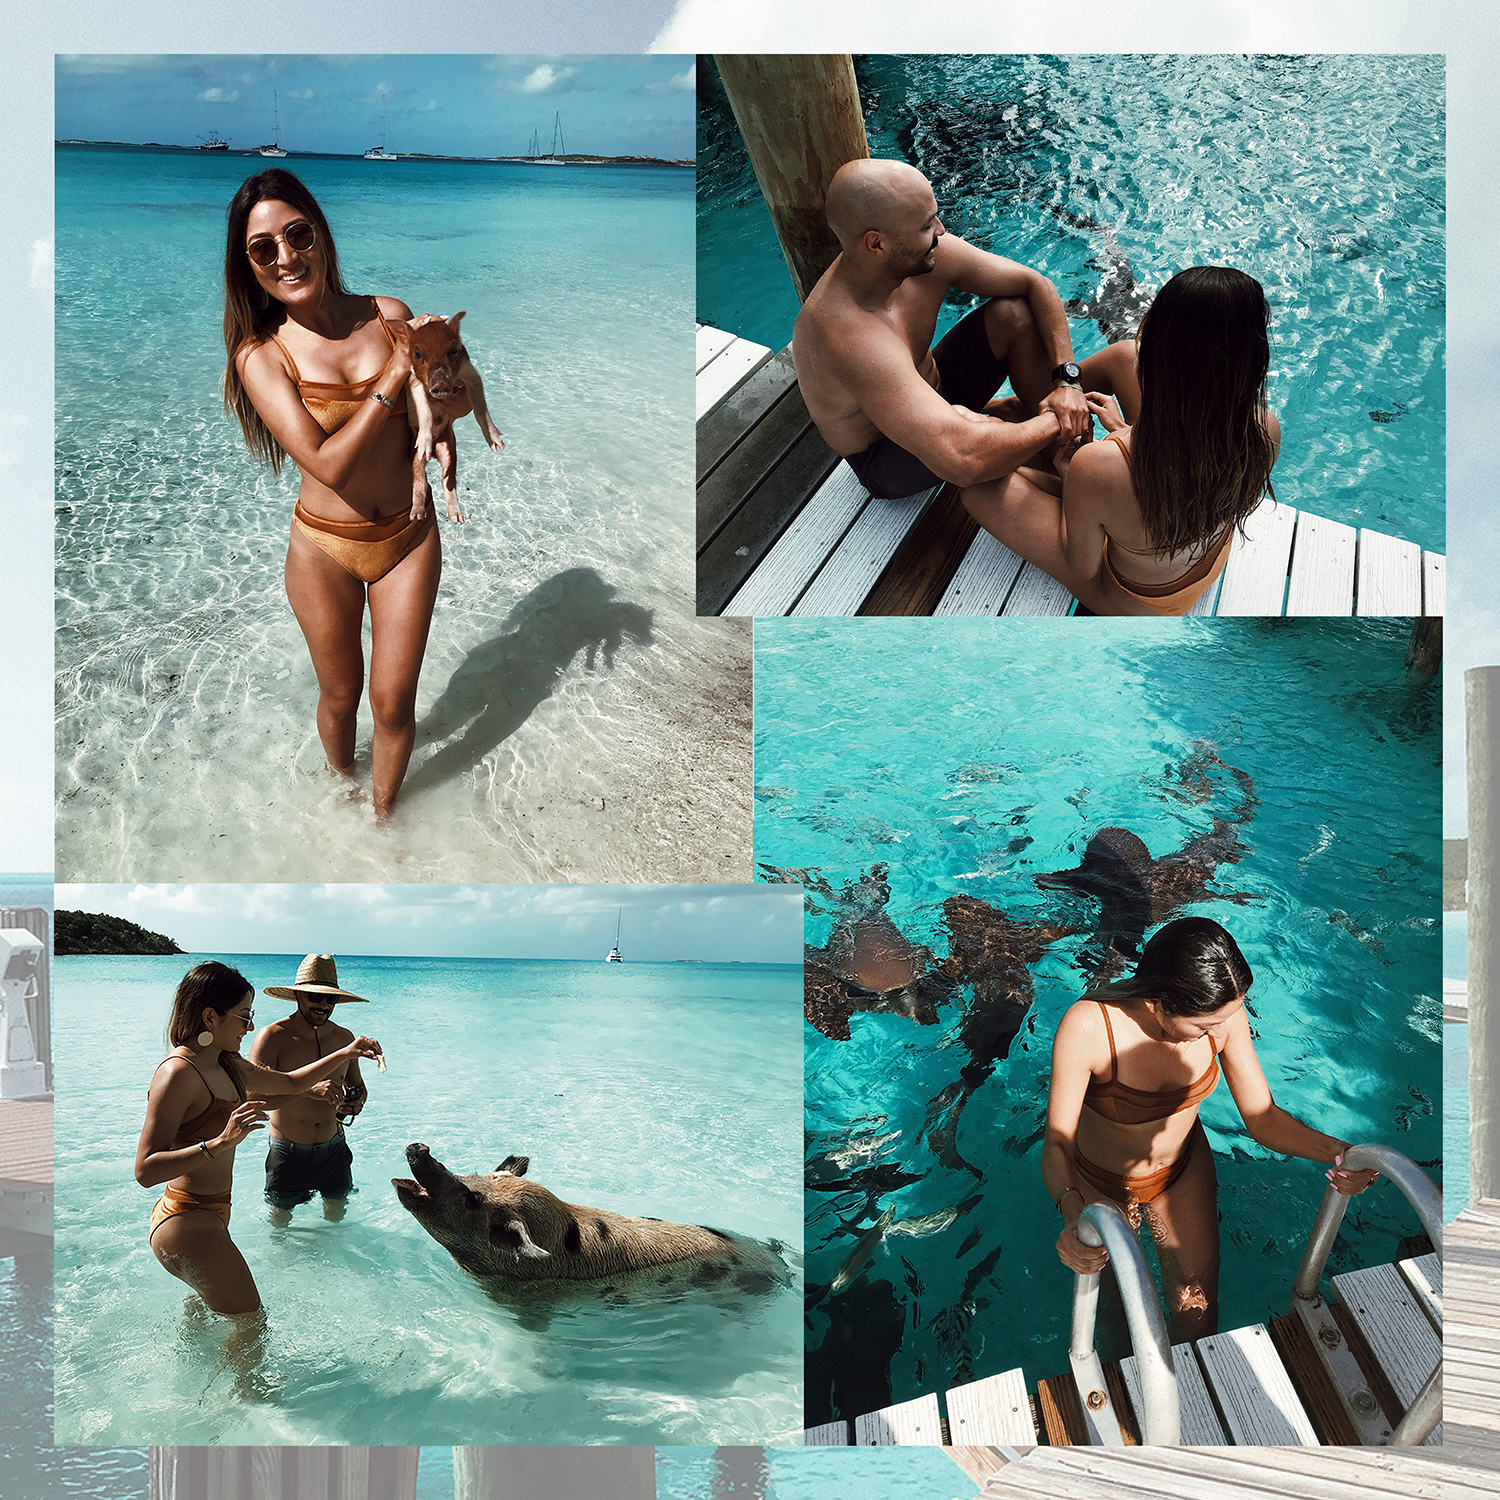 swimming with nurse sharks, The Bahamas, bahamas, island, vacation, trip, travel, birthday, melrodstyle, la blogger, travel blogger, hispanic blogger, mexican blogger, latina blogger, lifestyle blogger, lifestyle, swimming with pigs, swimming pigs,